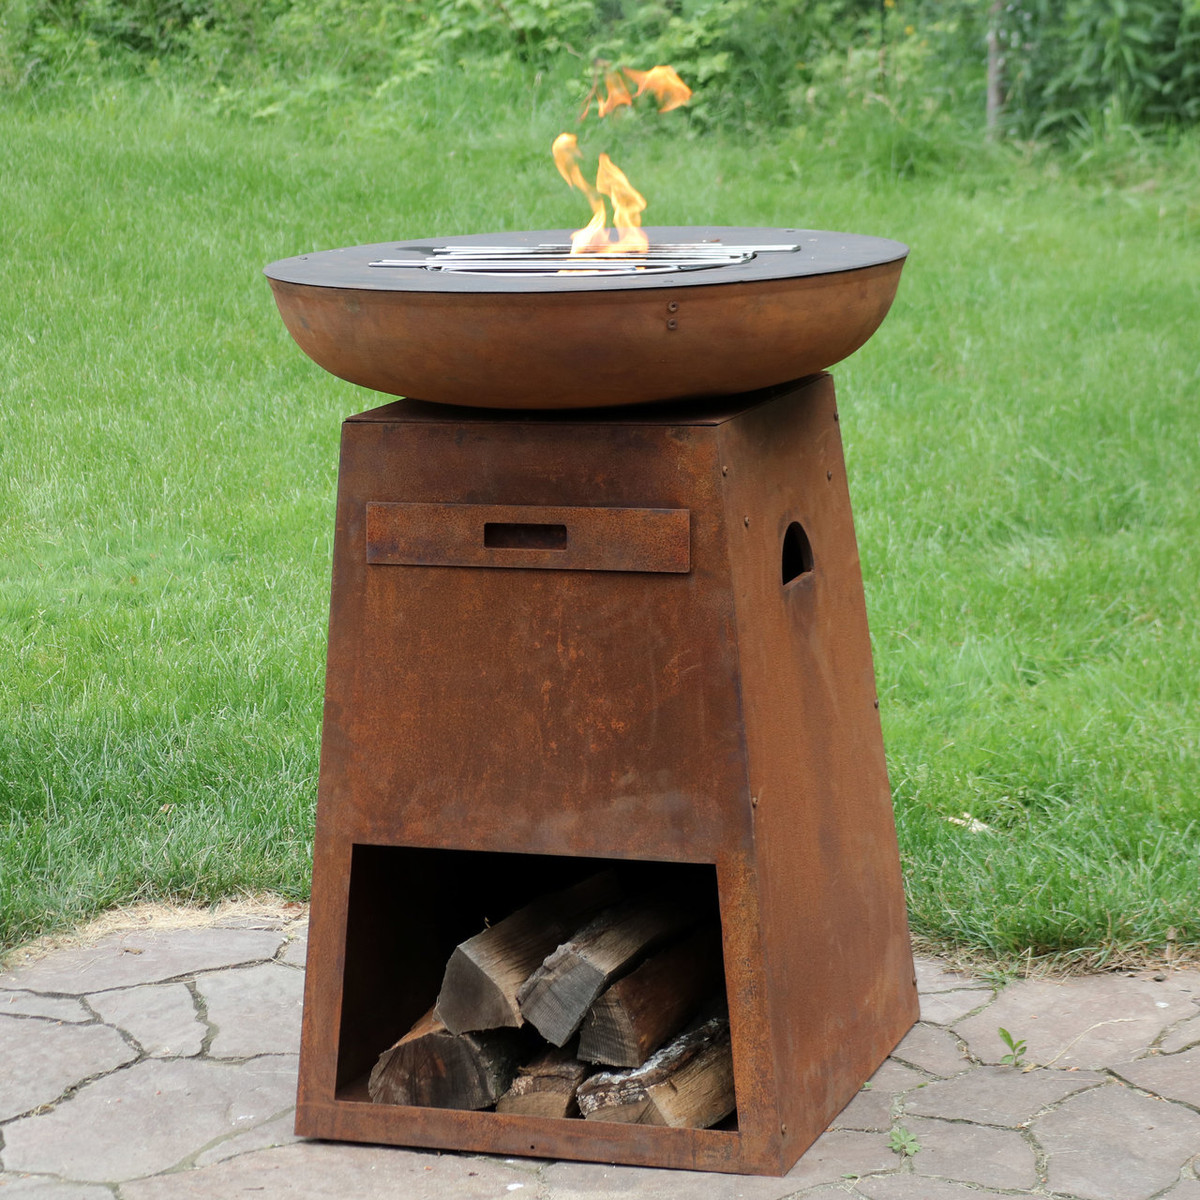 Sunnydaze Rustic Fire Pit with Cooking Edge and Built-In Log Storage ...